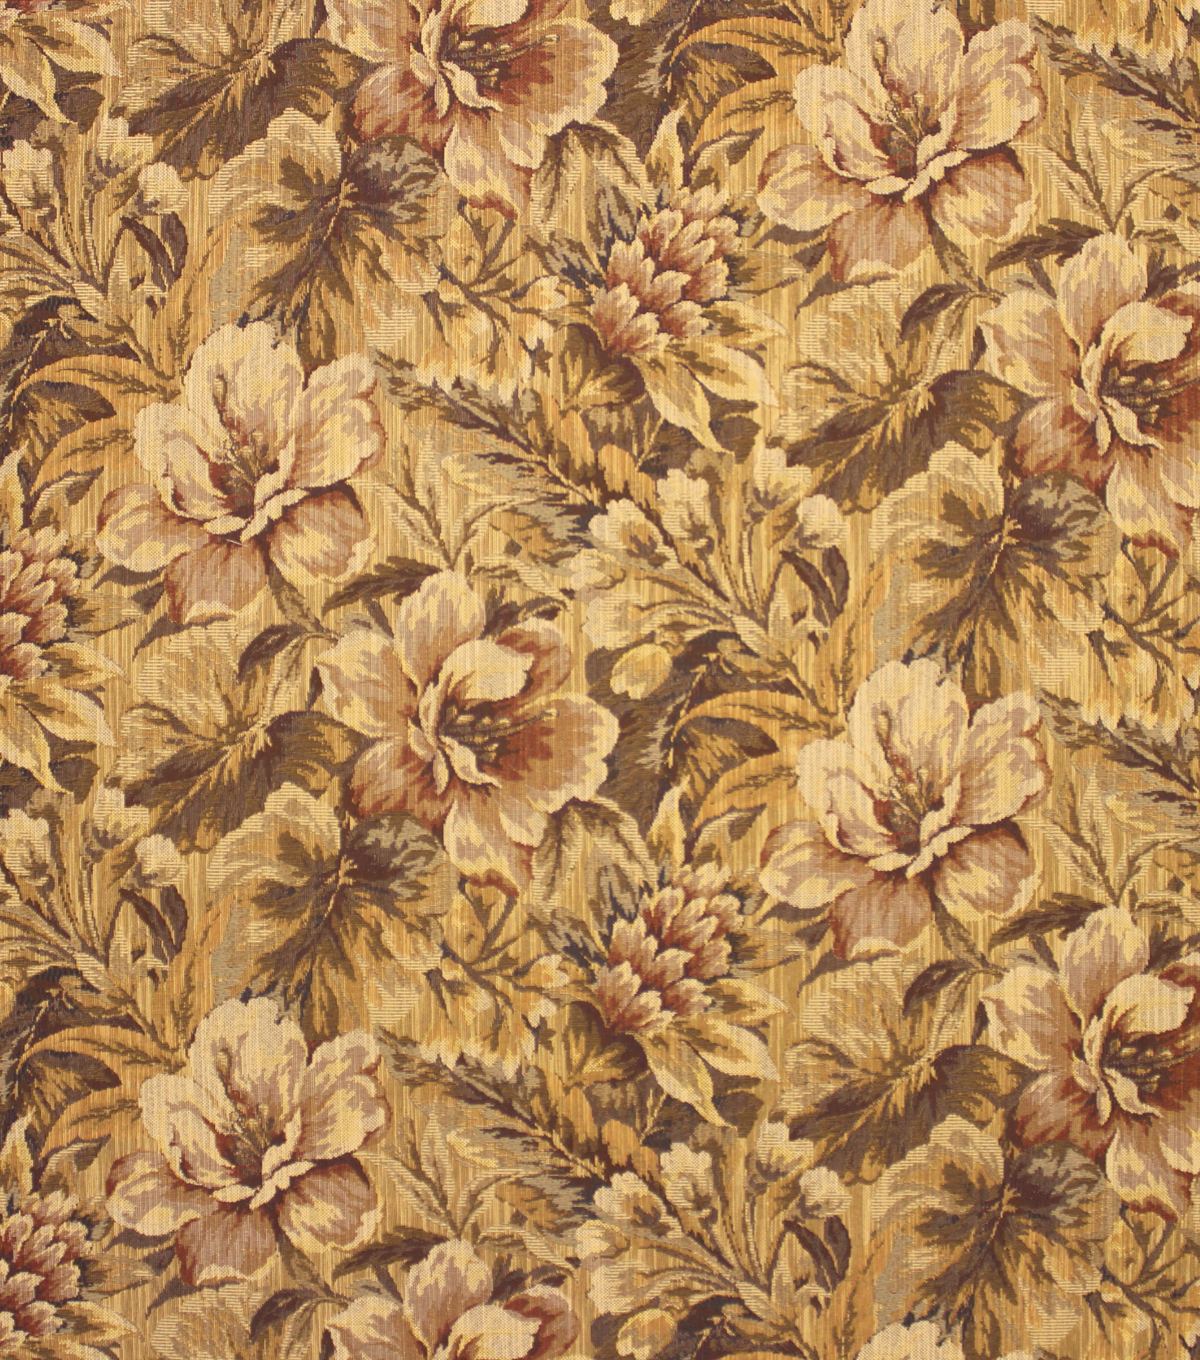 Home Decor 8\u0022x8\u0022 Fabric Swatch-Upholstery Fabric Barrow M8829-5304 Antique